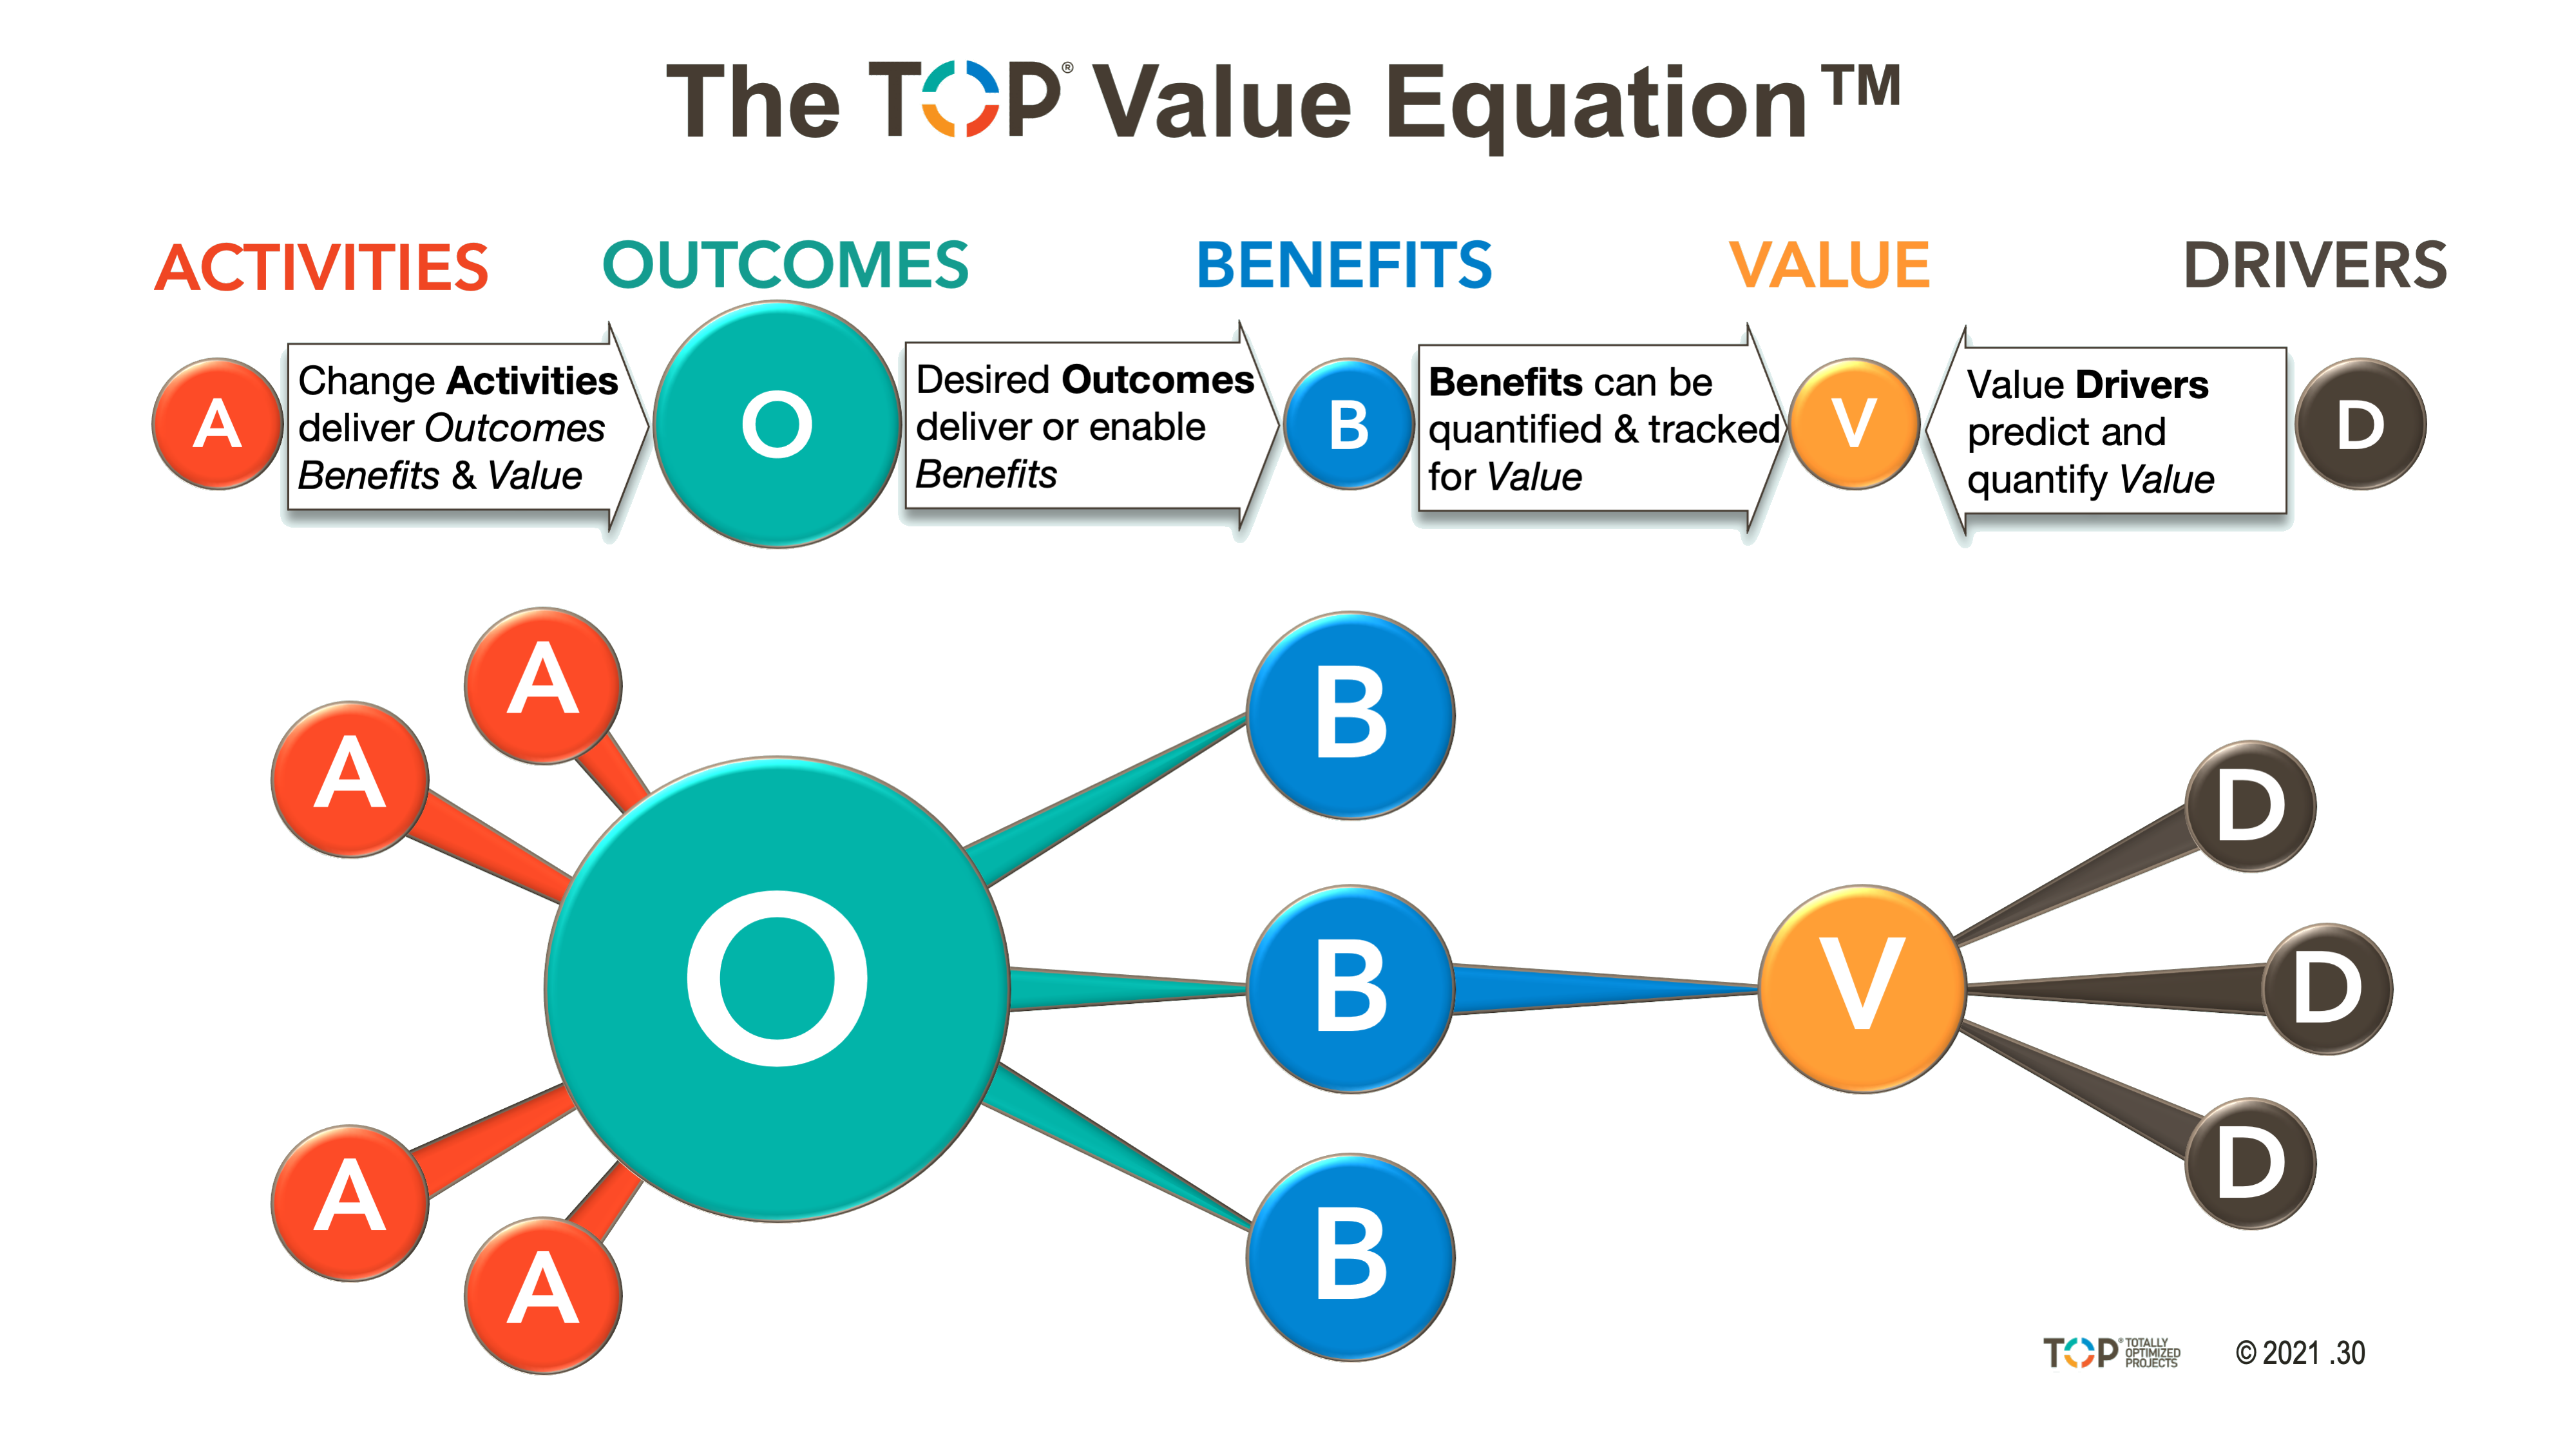 TOP Value Equation